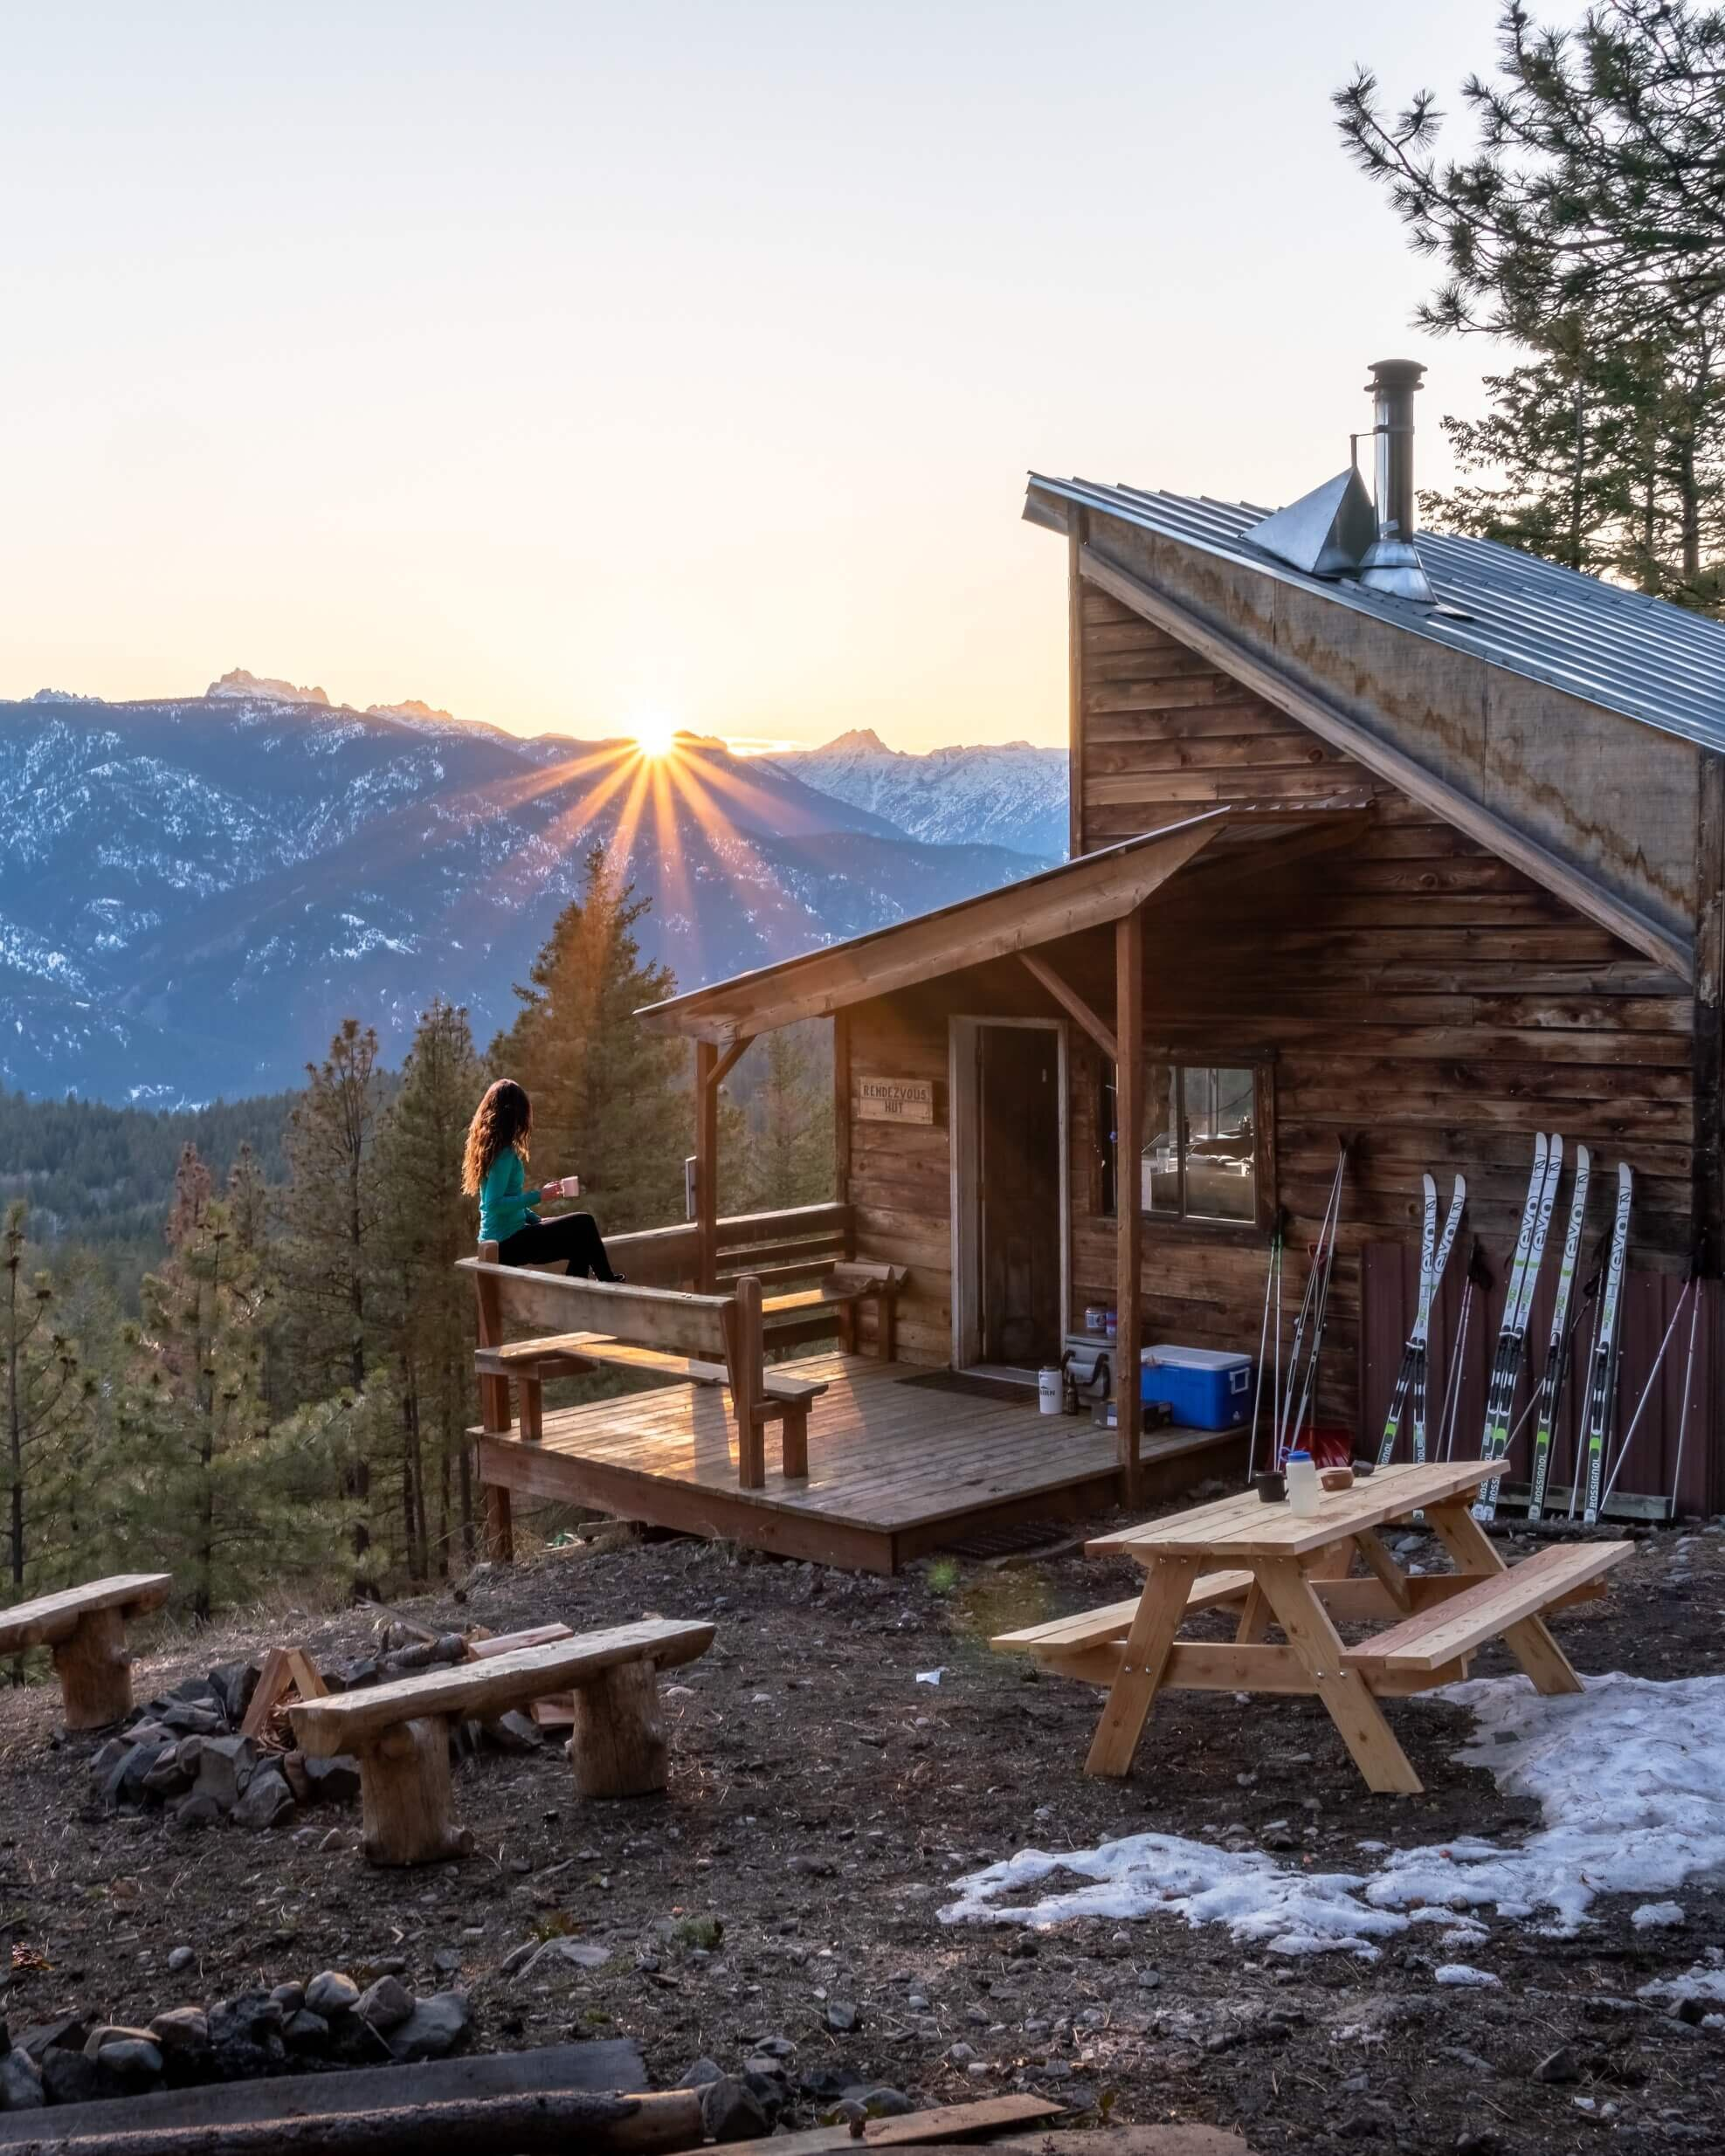 This is the Rendezvous Hut, one of many backcountry huts that you can rent out and ski to along the Rendezvous Trail. This was in April (the last week that the trail was open for cross-crountry skiing. I promise there's usually A LOT more snow! Photo by  Josh Steele .